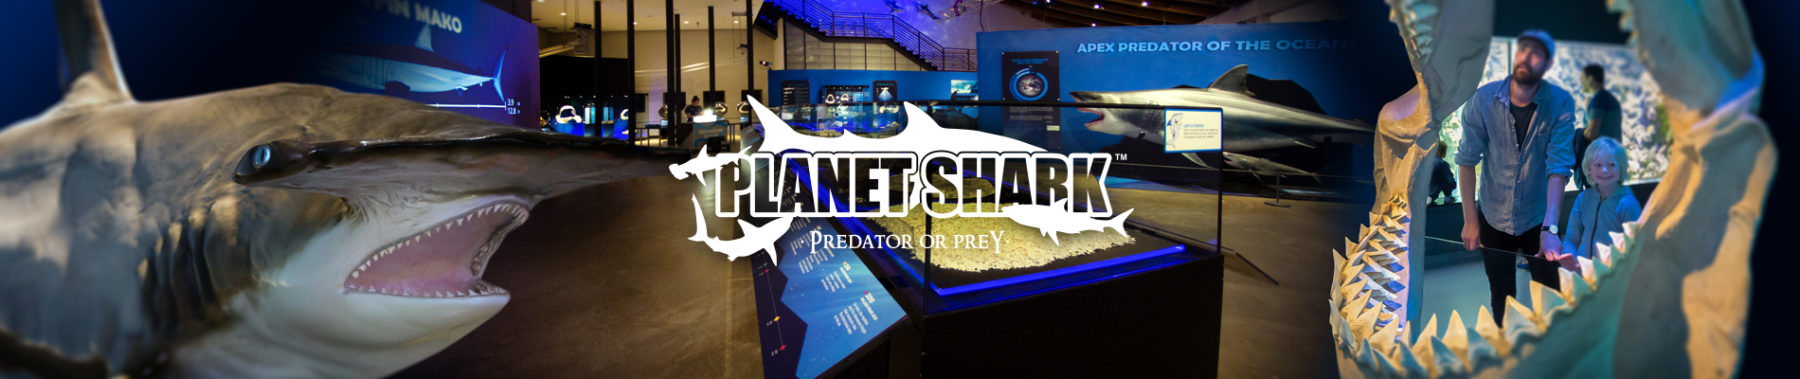 Planet Shark: Predator or Prey